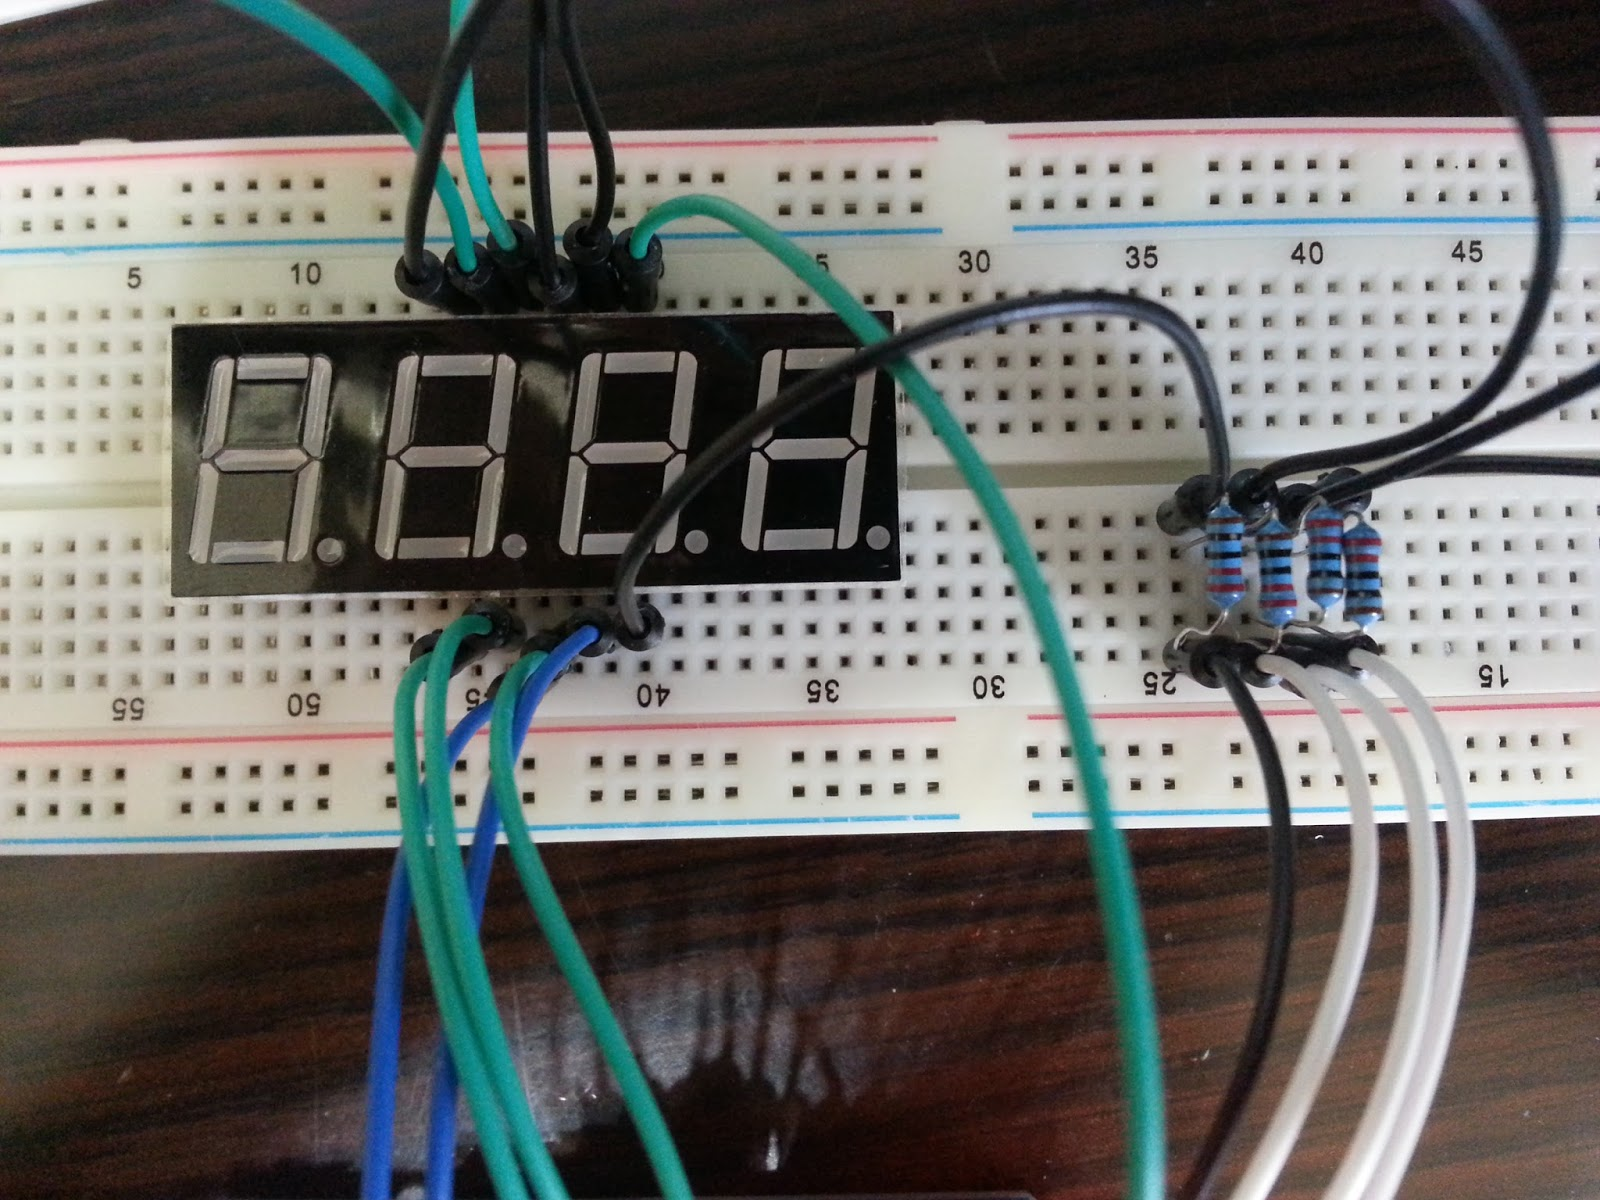 Led 7 Segment Display Circuit Guide And Troubleshooting Of Wiring Solid State Relay Z240d10 Alanh0 Research Blog Arduino 4 Digit Large